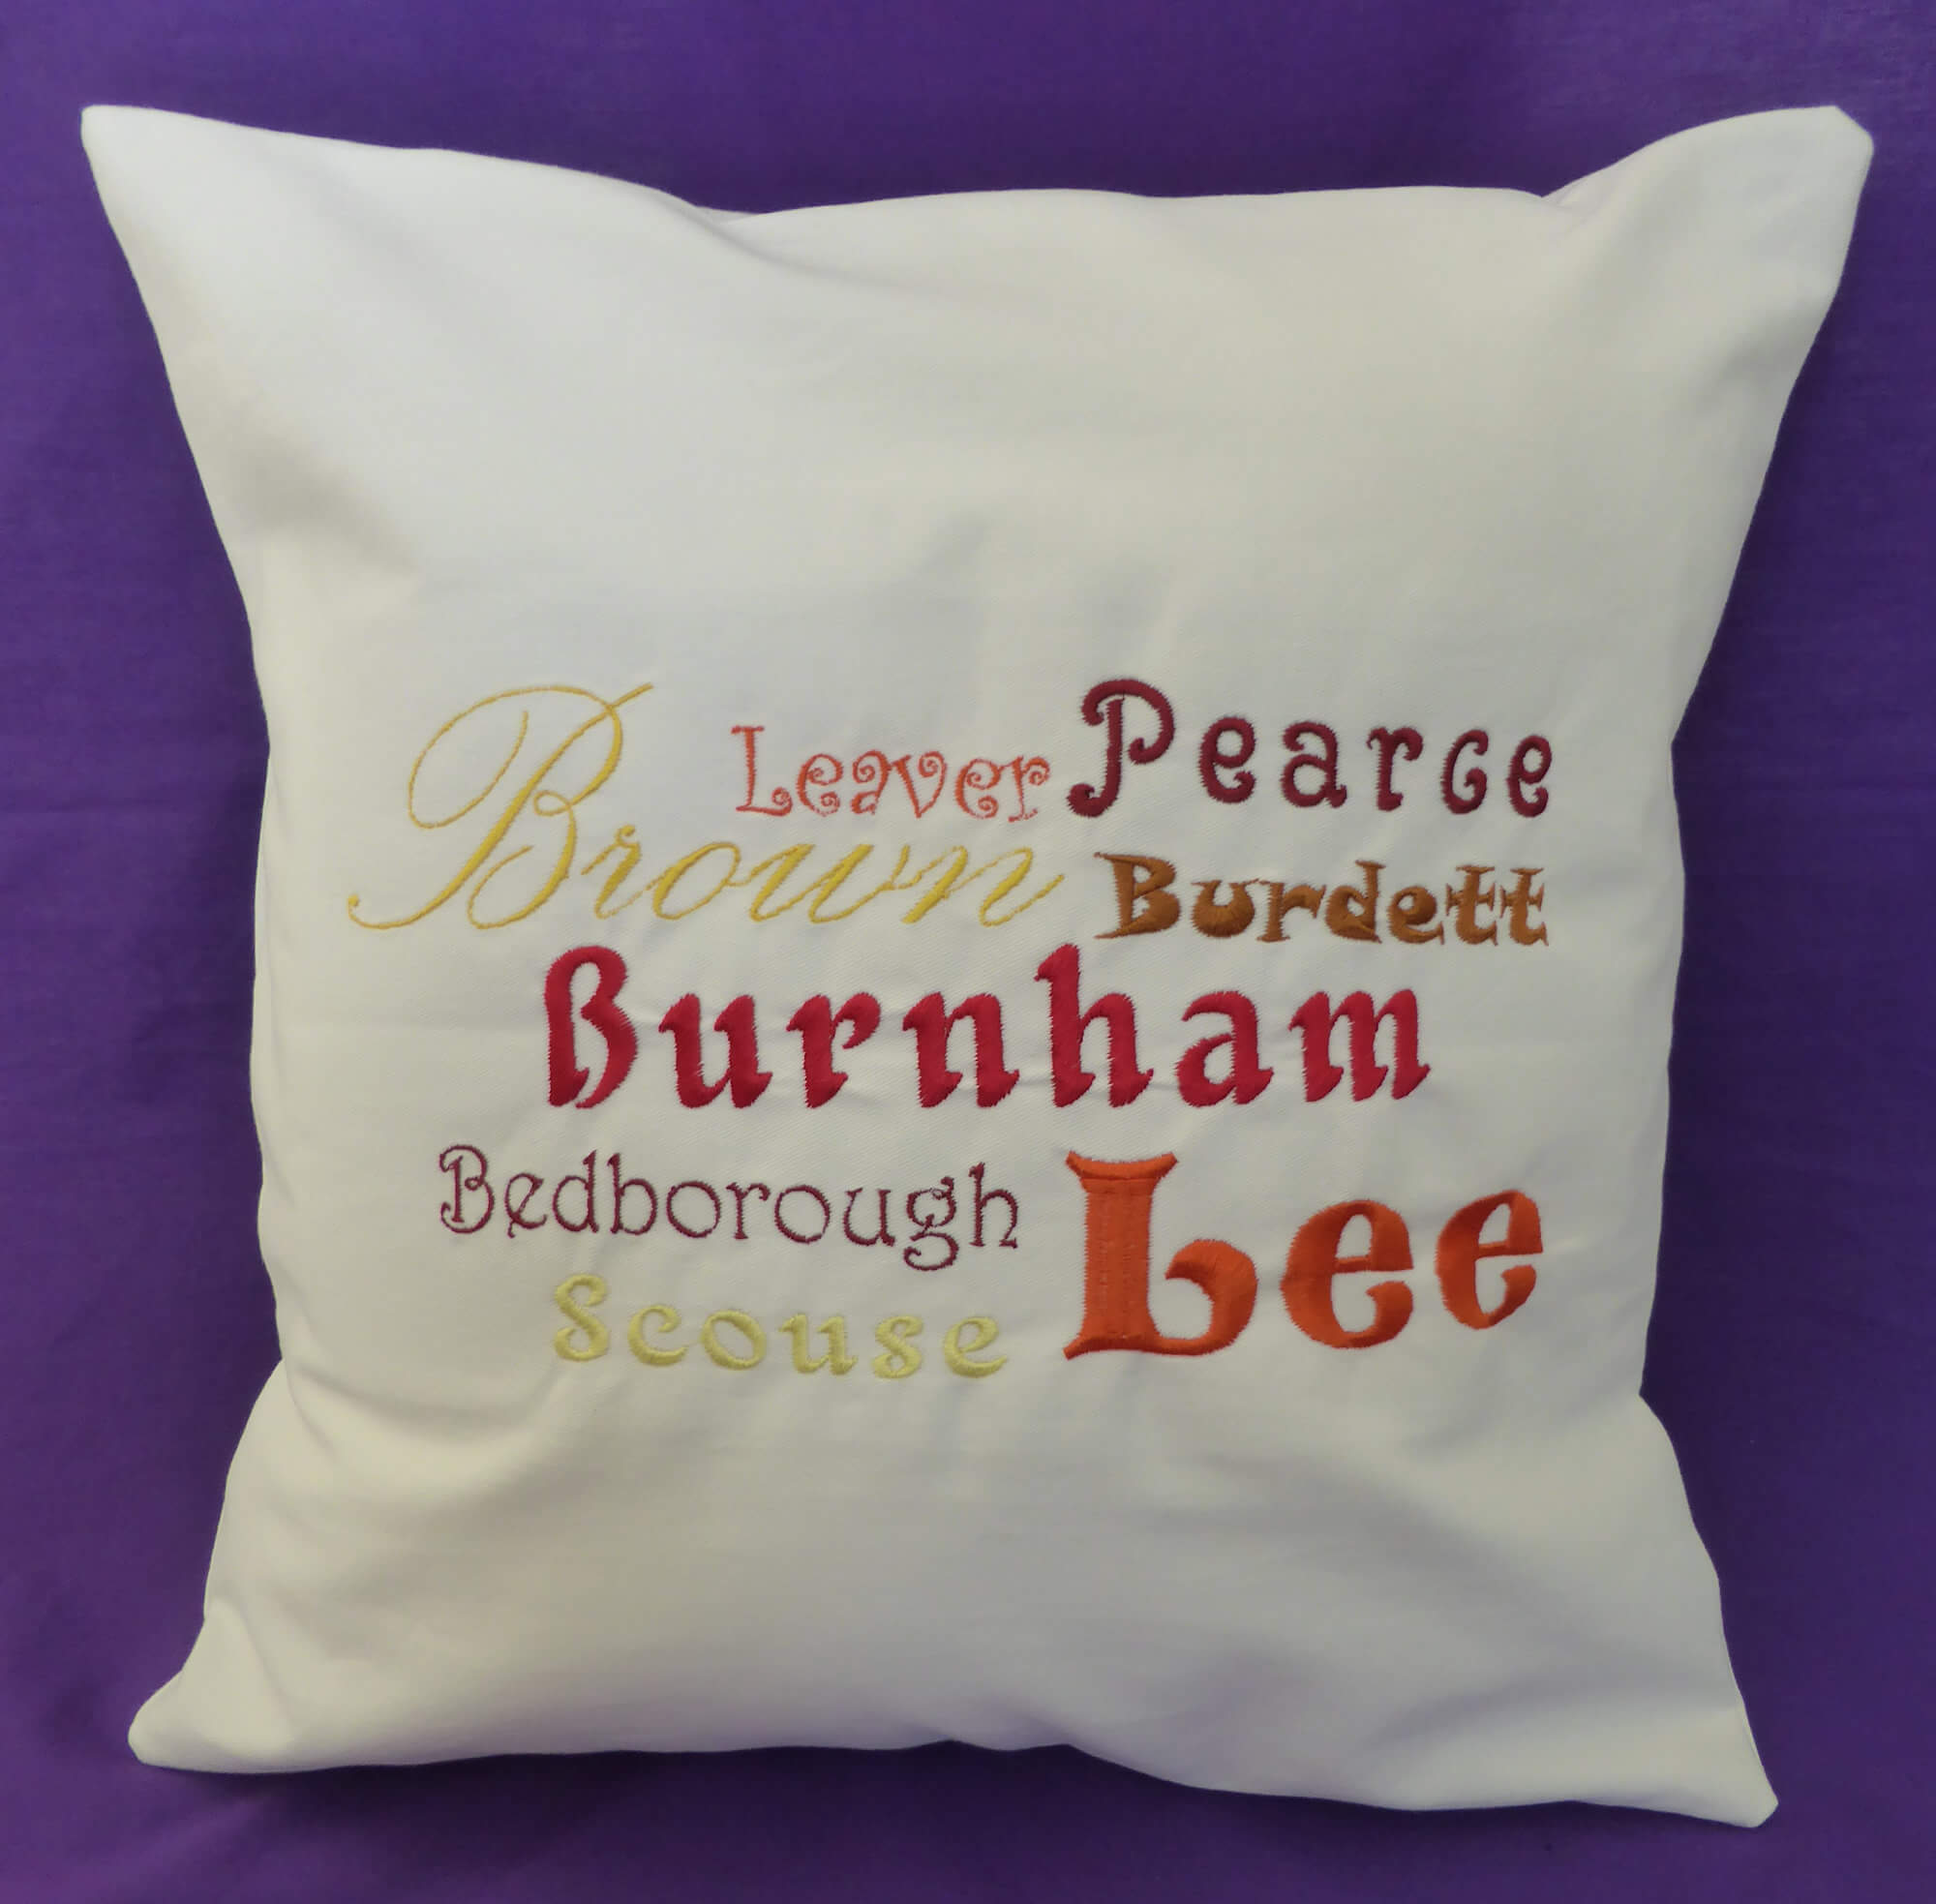 Ancestors' Surnames Cushion Cover